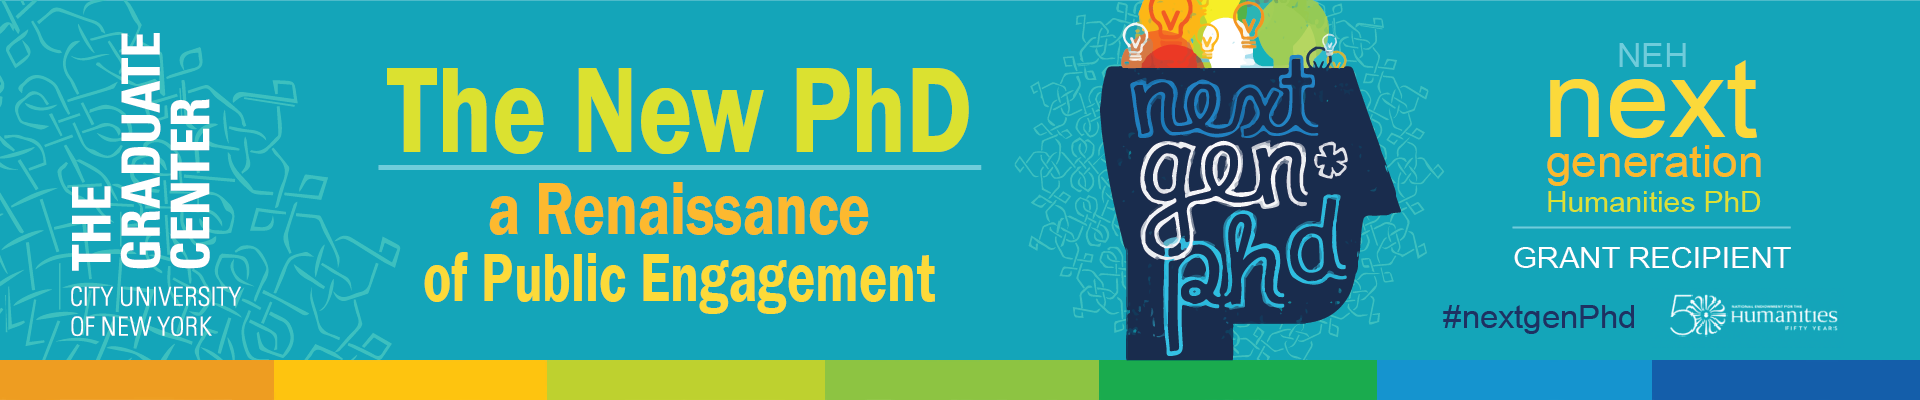 The New PhD: A Renaissance of Public Engagement